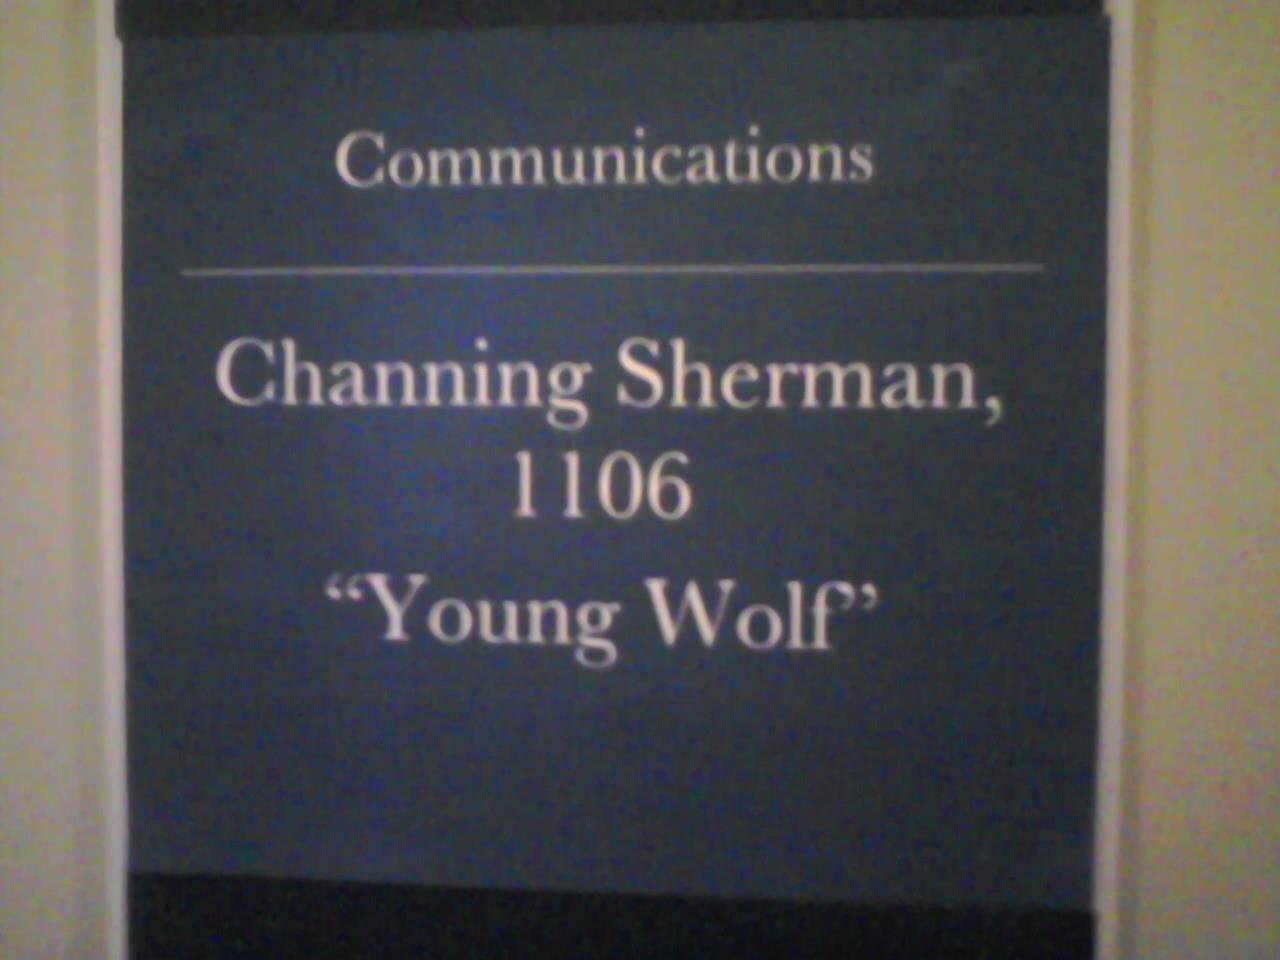 Code name: Young Wolf